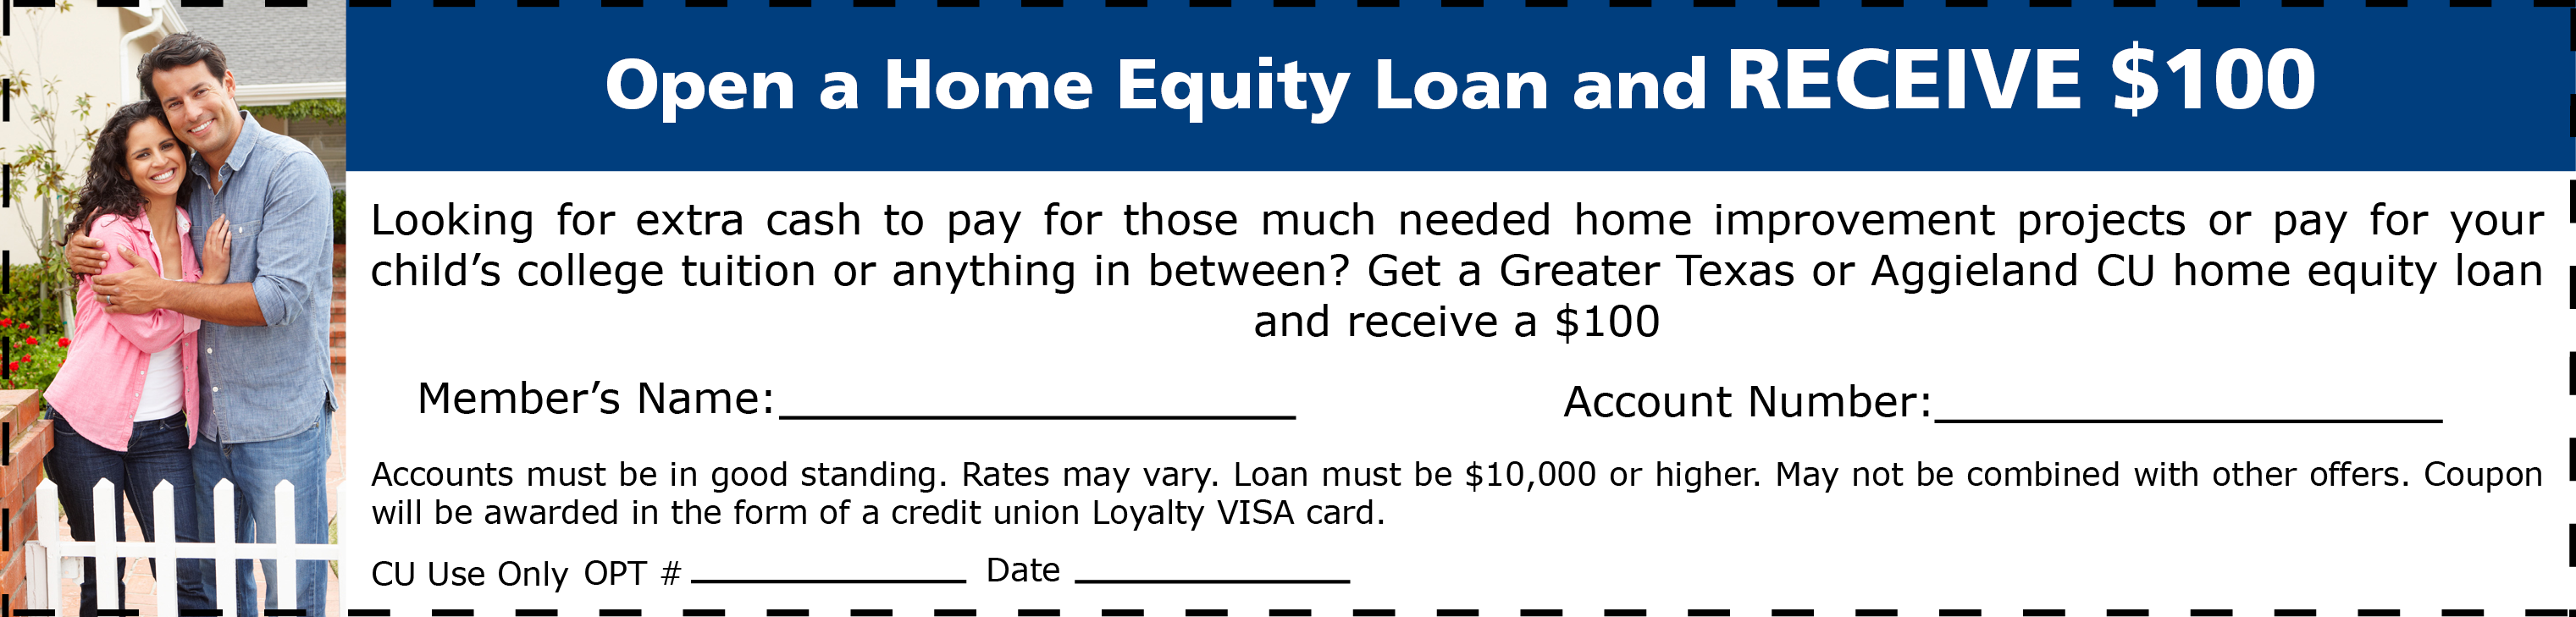 Open a home equity loan and receive $100.